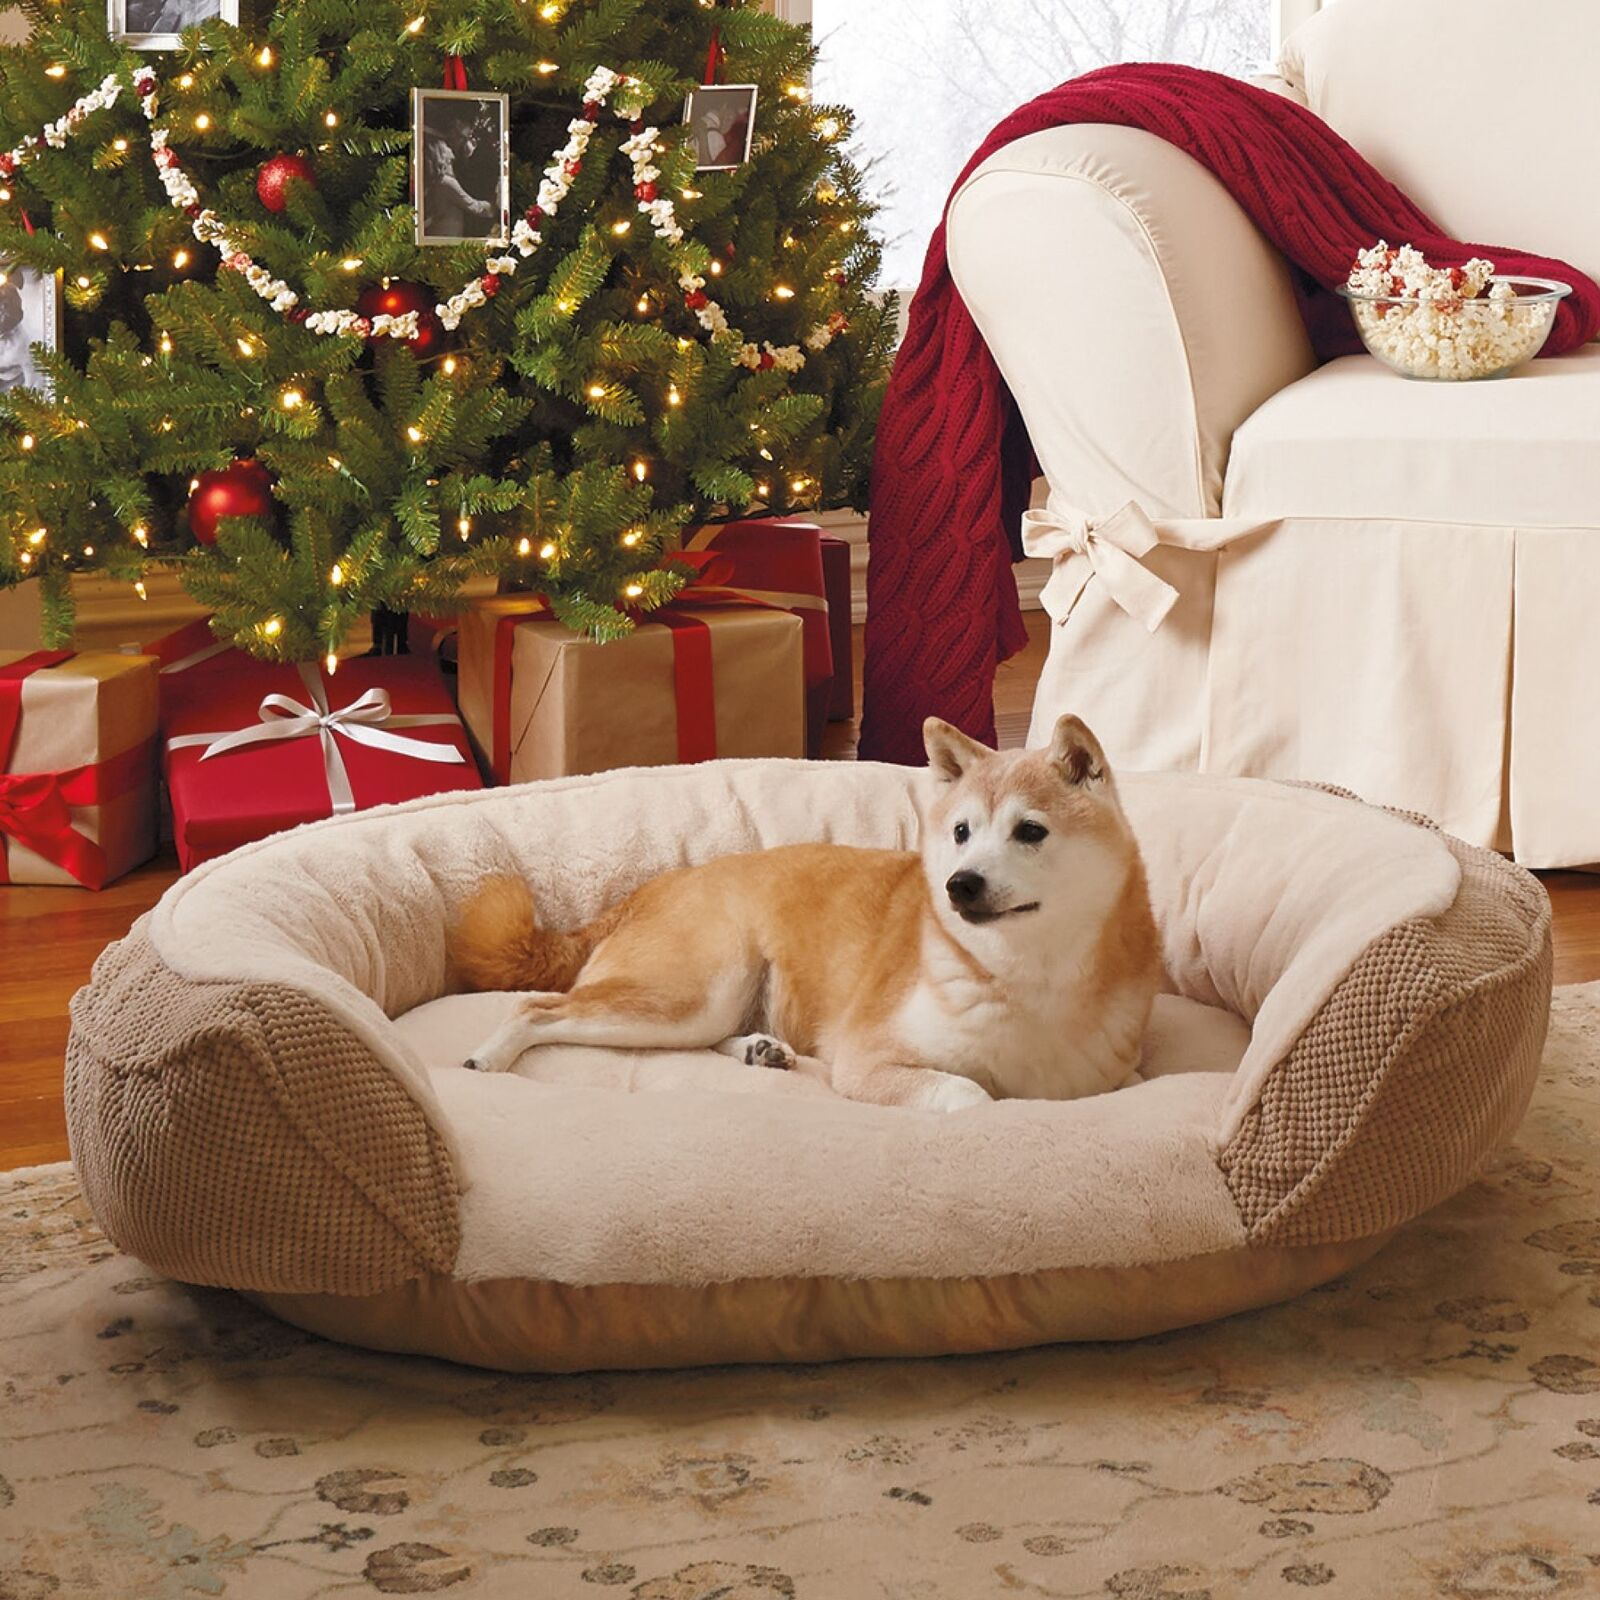 45-in Home Fabric Orthopedic Foam Polyester Pet Dog Warm Cushion Crate Sofa Bed